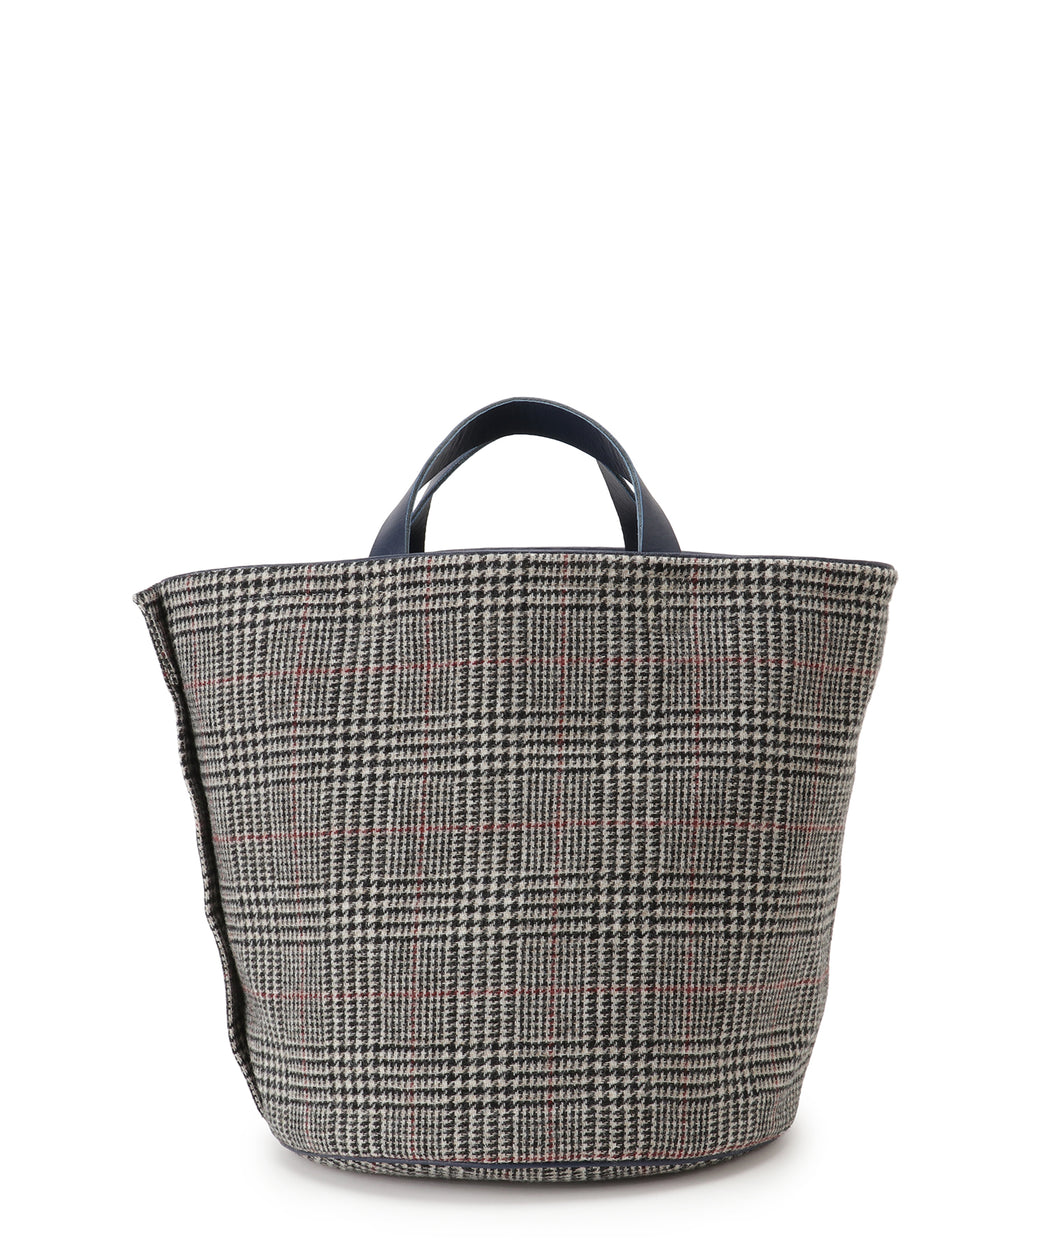 [予約] Large leather-trimmed tweed bucket bag [11月中旬発送予定]